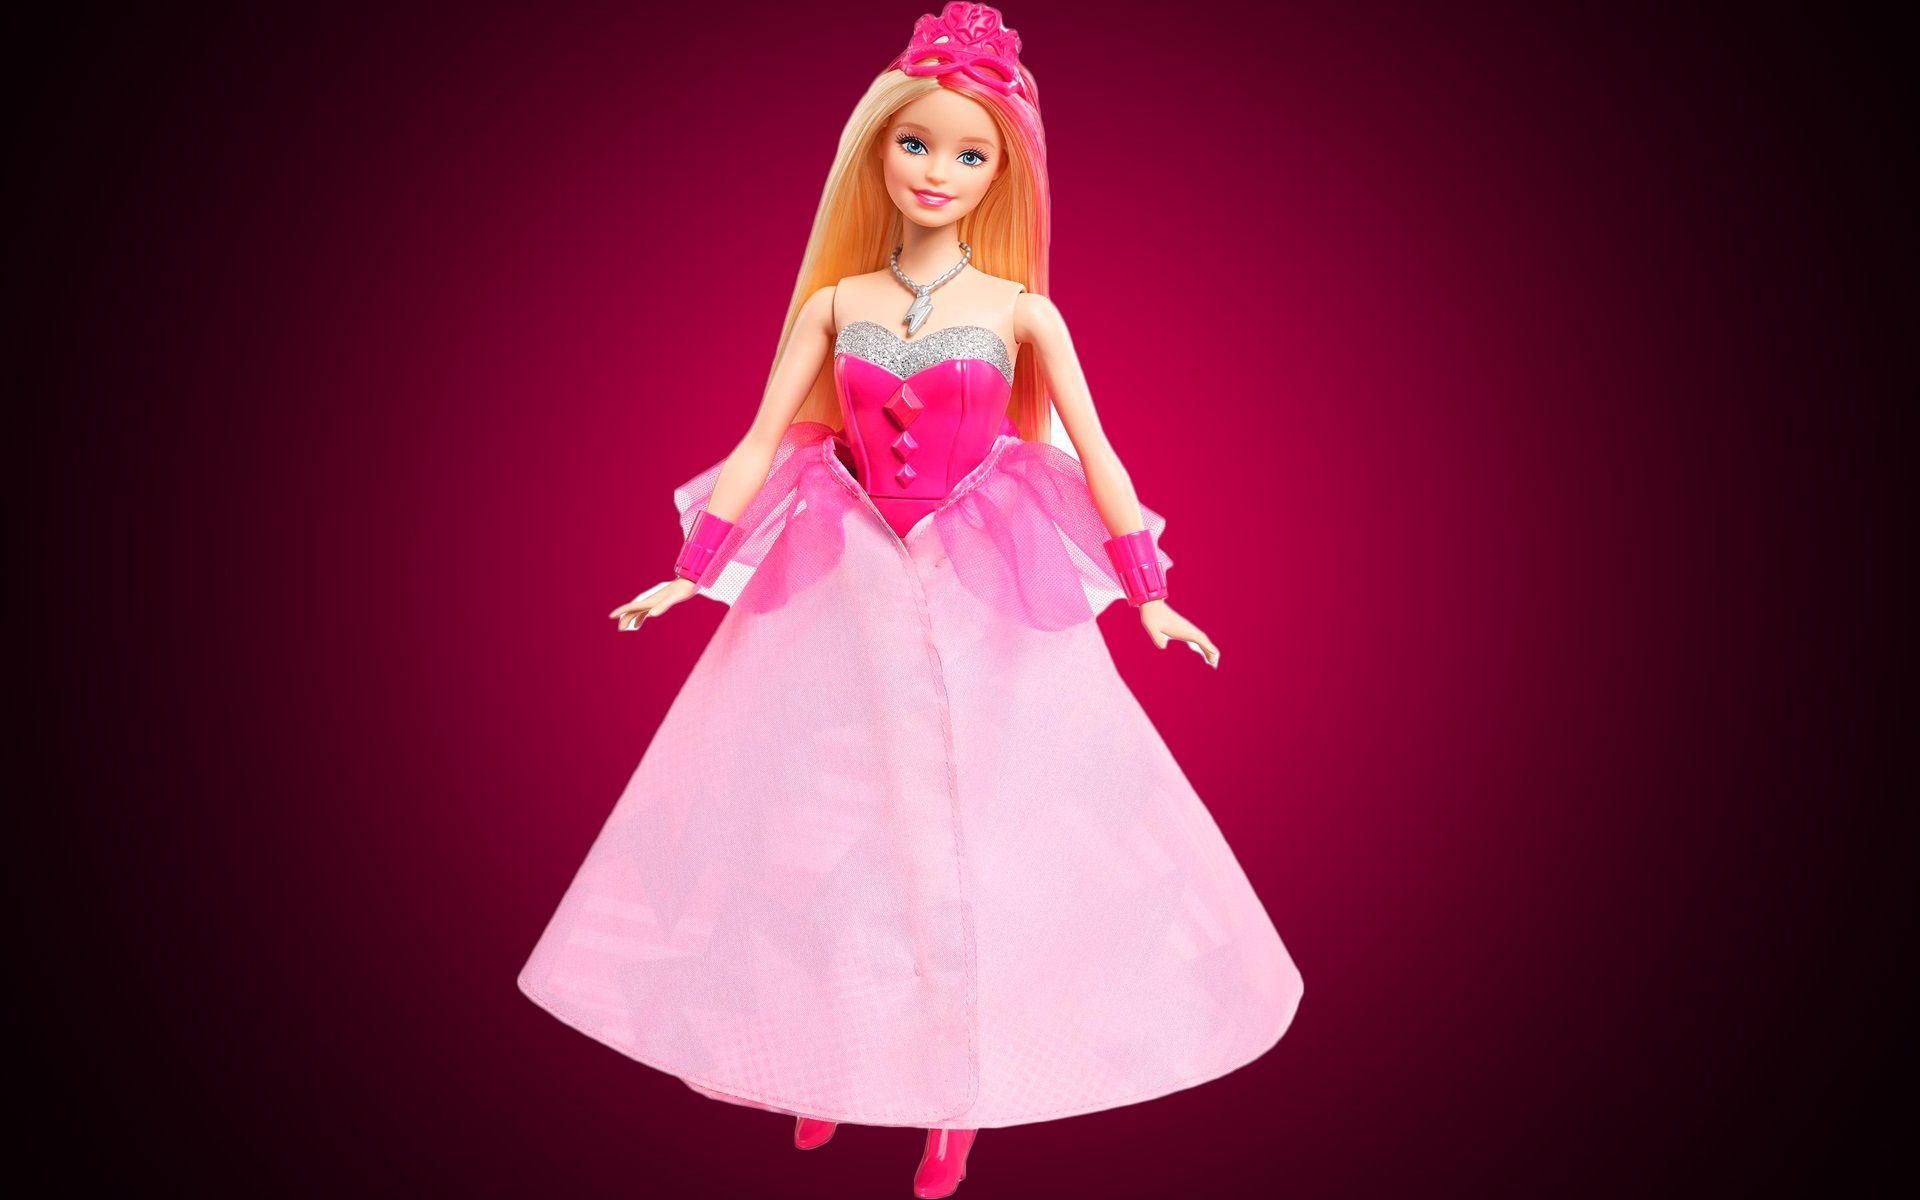 Latest Wallpapers Of Barbie Doll Wallpaper Cave